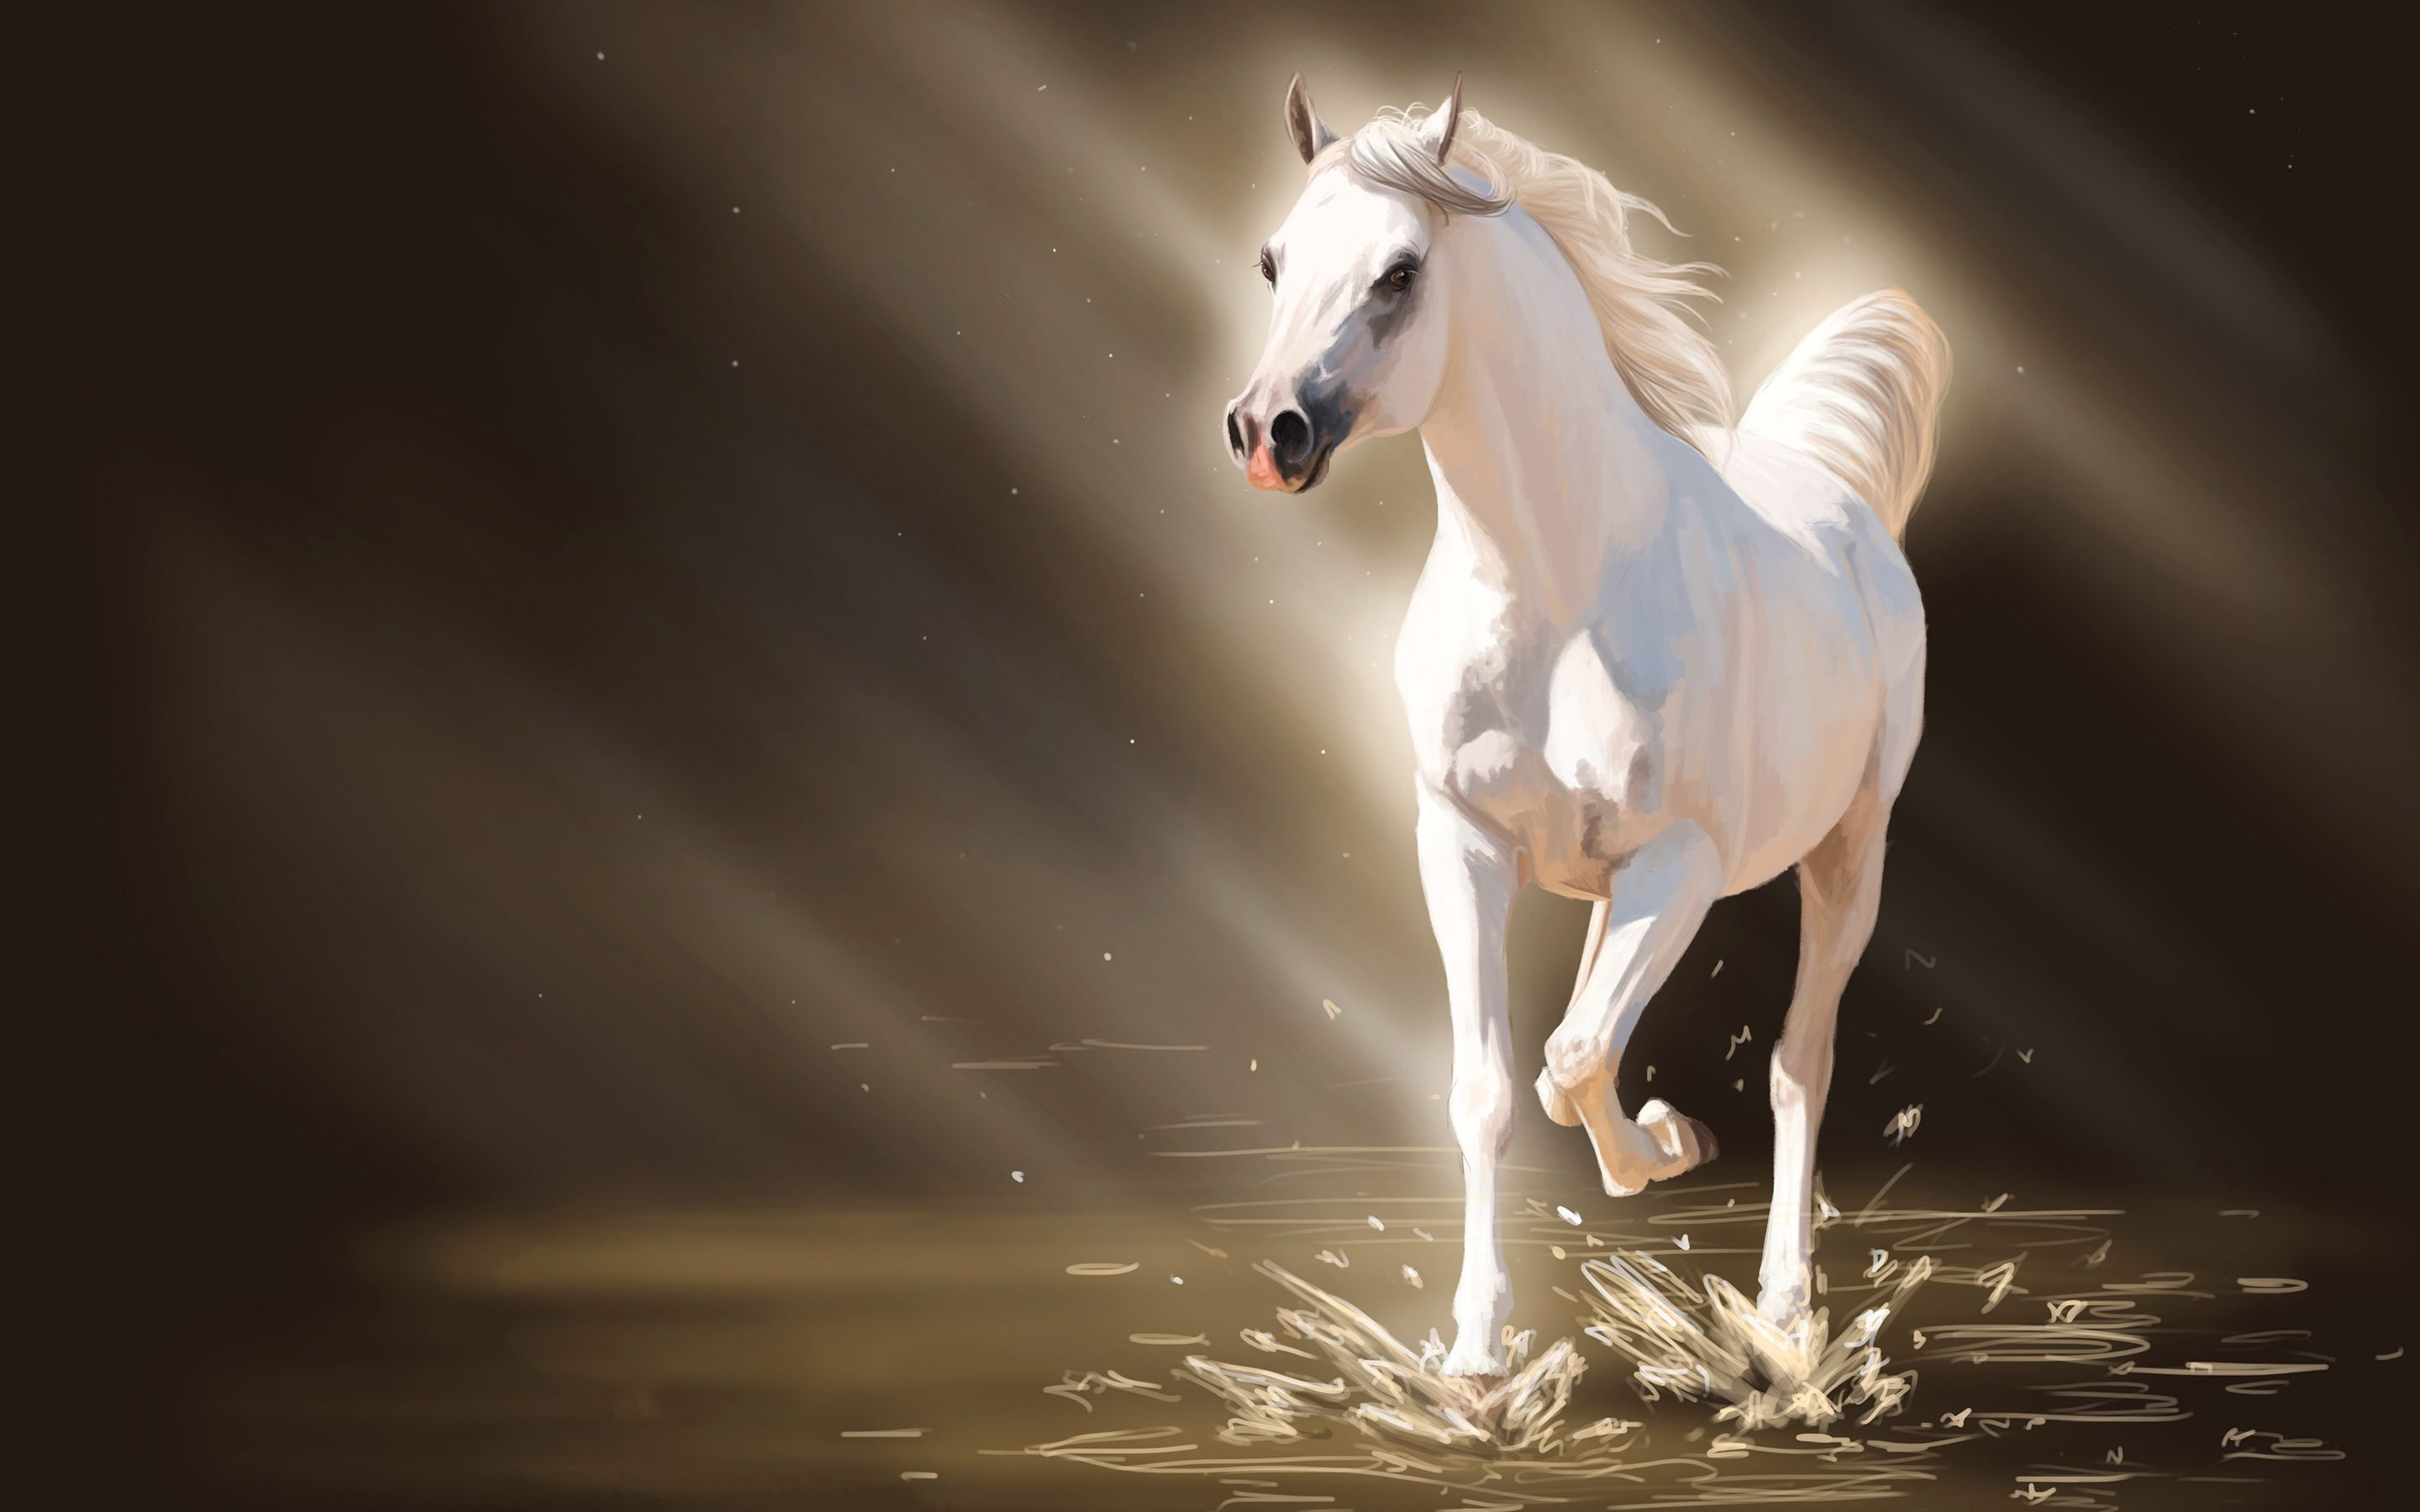 Amazing Wallpaper Horse Watercolor - 03e89028f81d0d0aa3a1f9baba1d1c74  Perfect Image Reference_236013.jpg